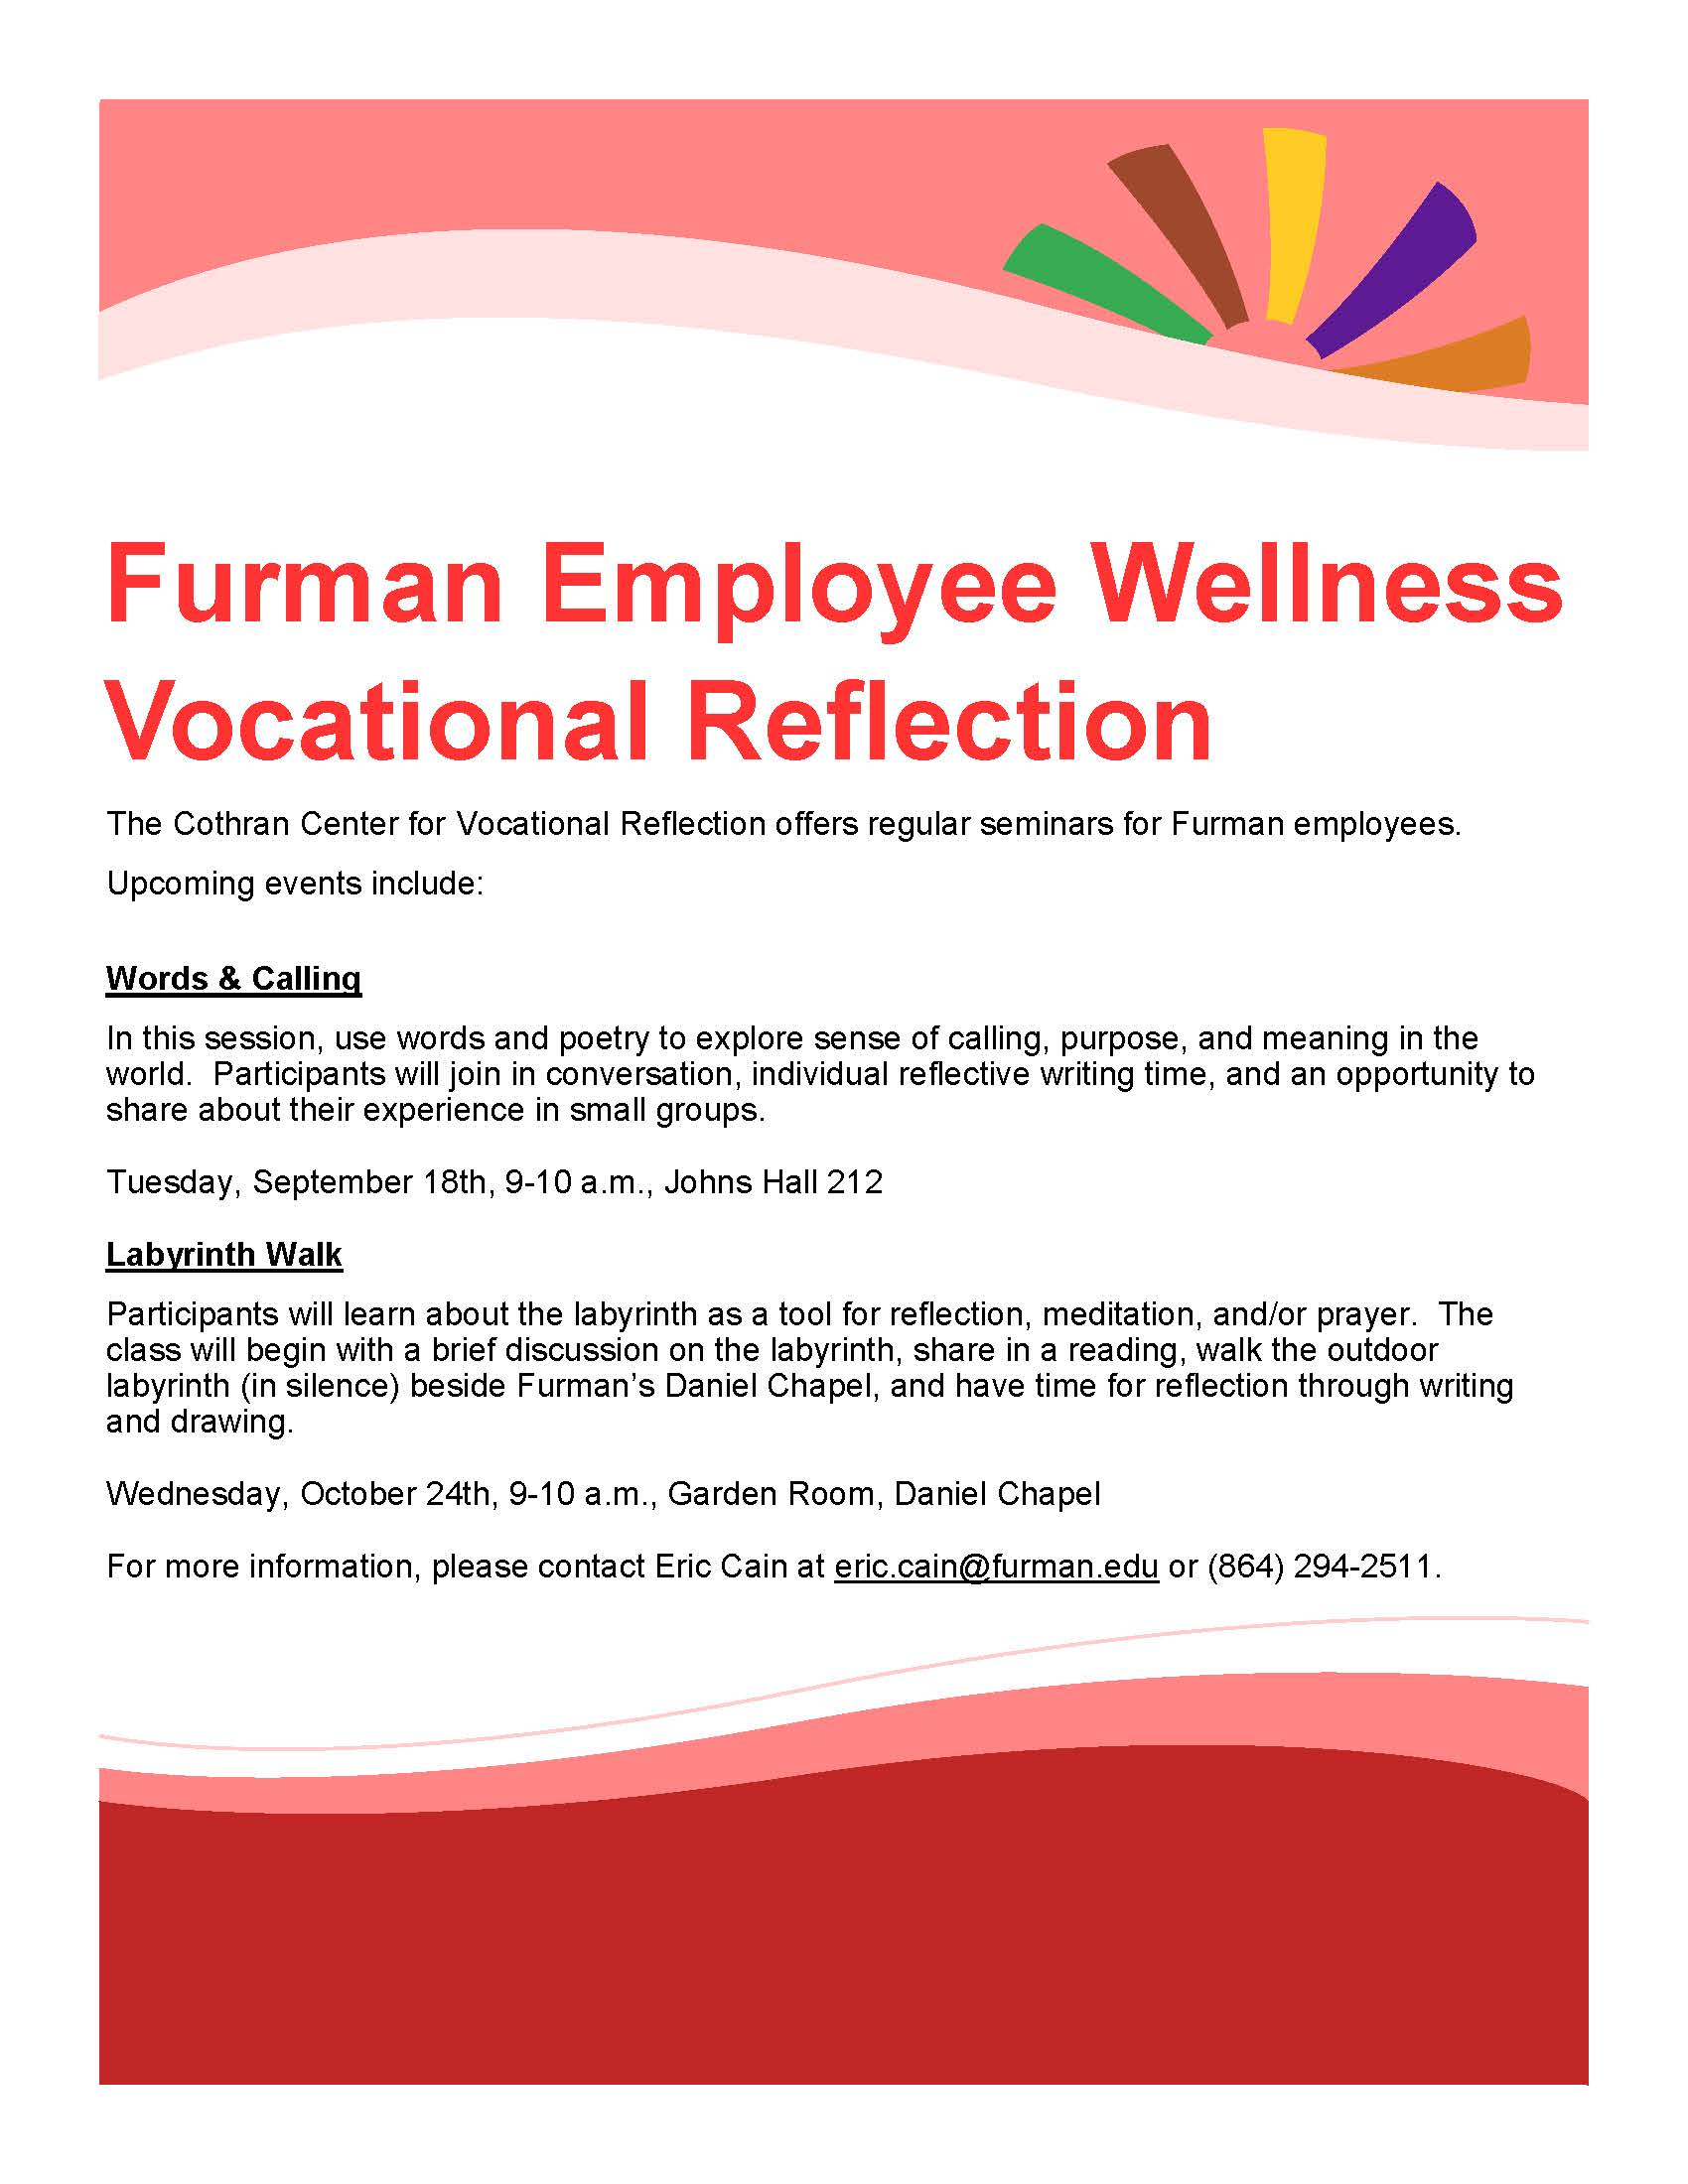 Cothran Center for Vocational Reflection | Live Well Furman